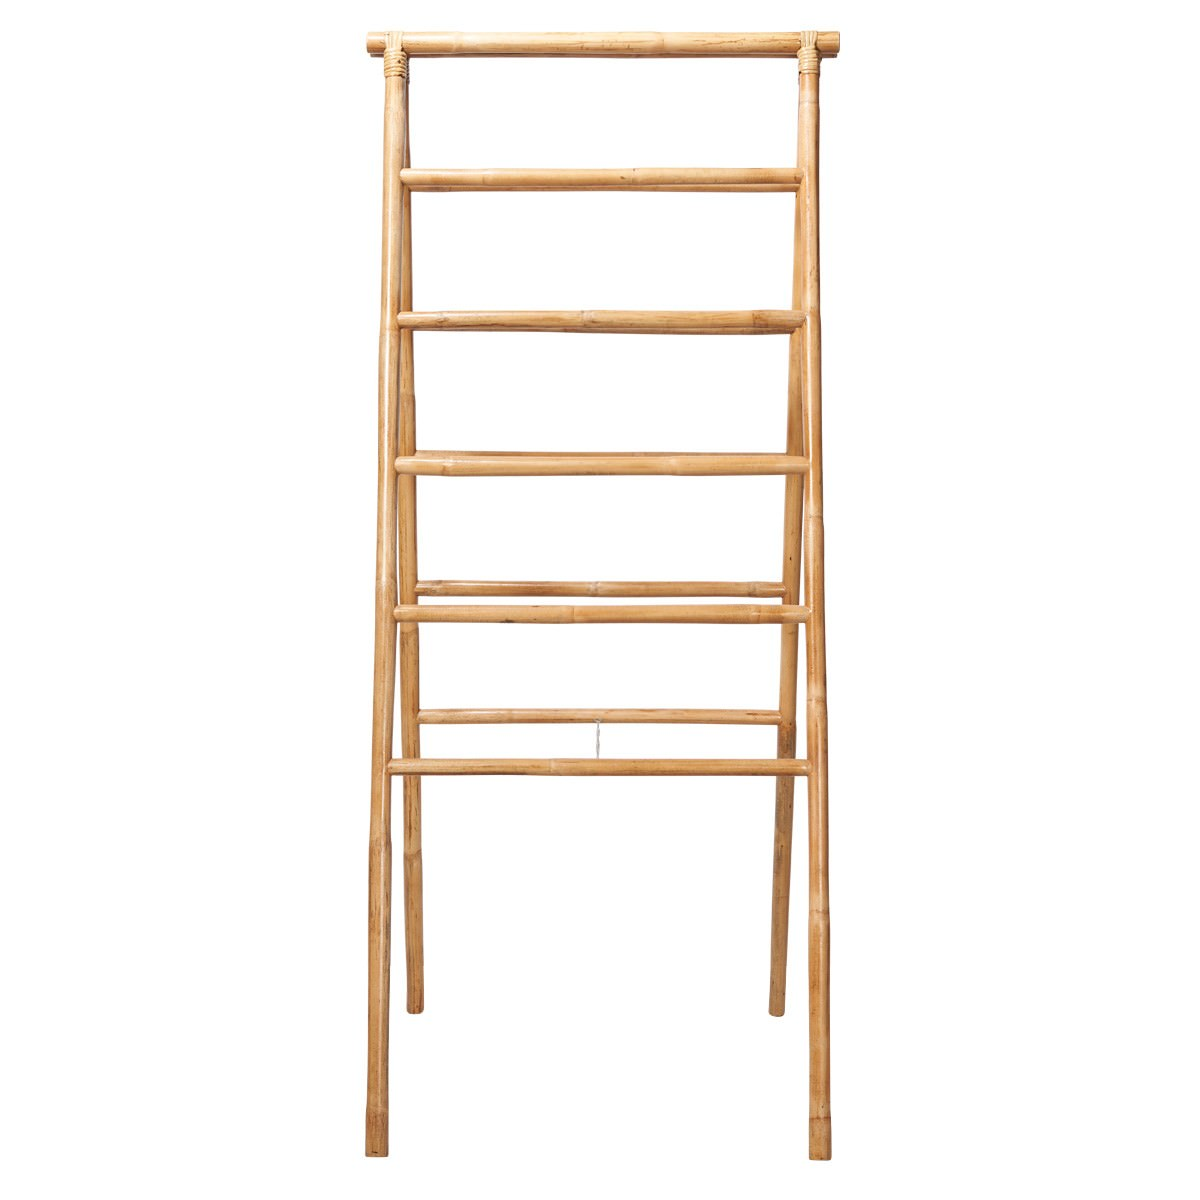 Mudoro Rattan Folding Ladder Display Rack